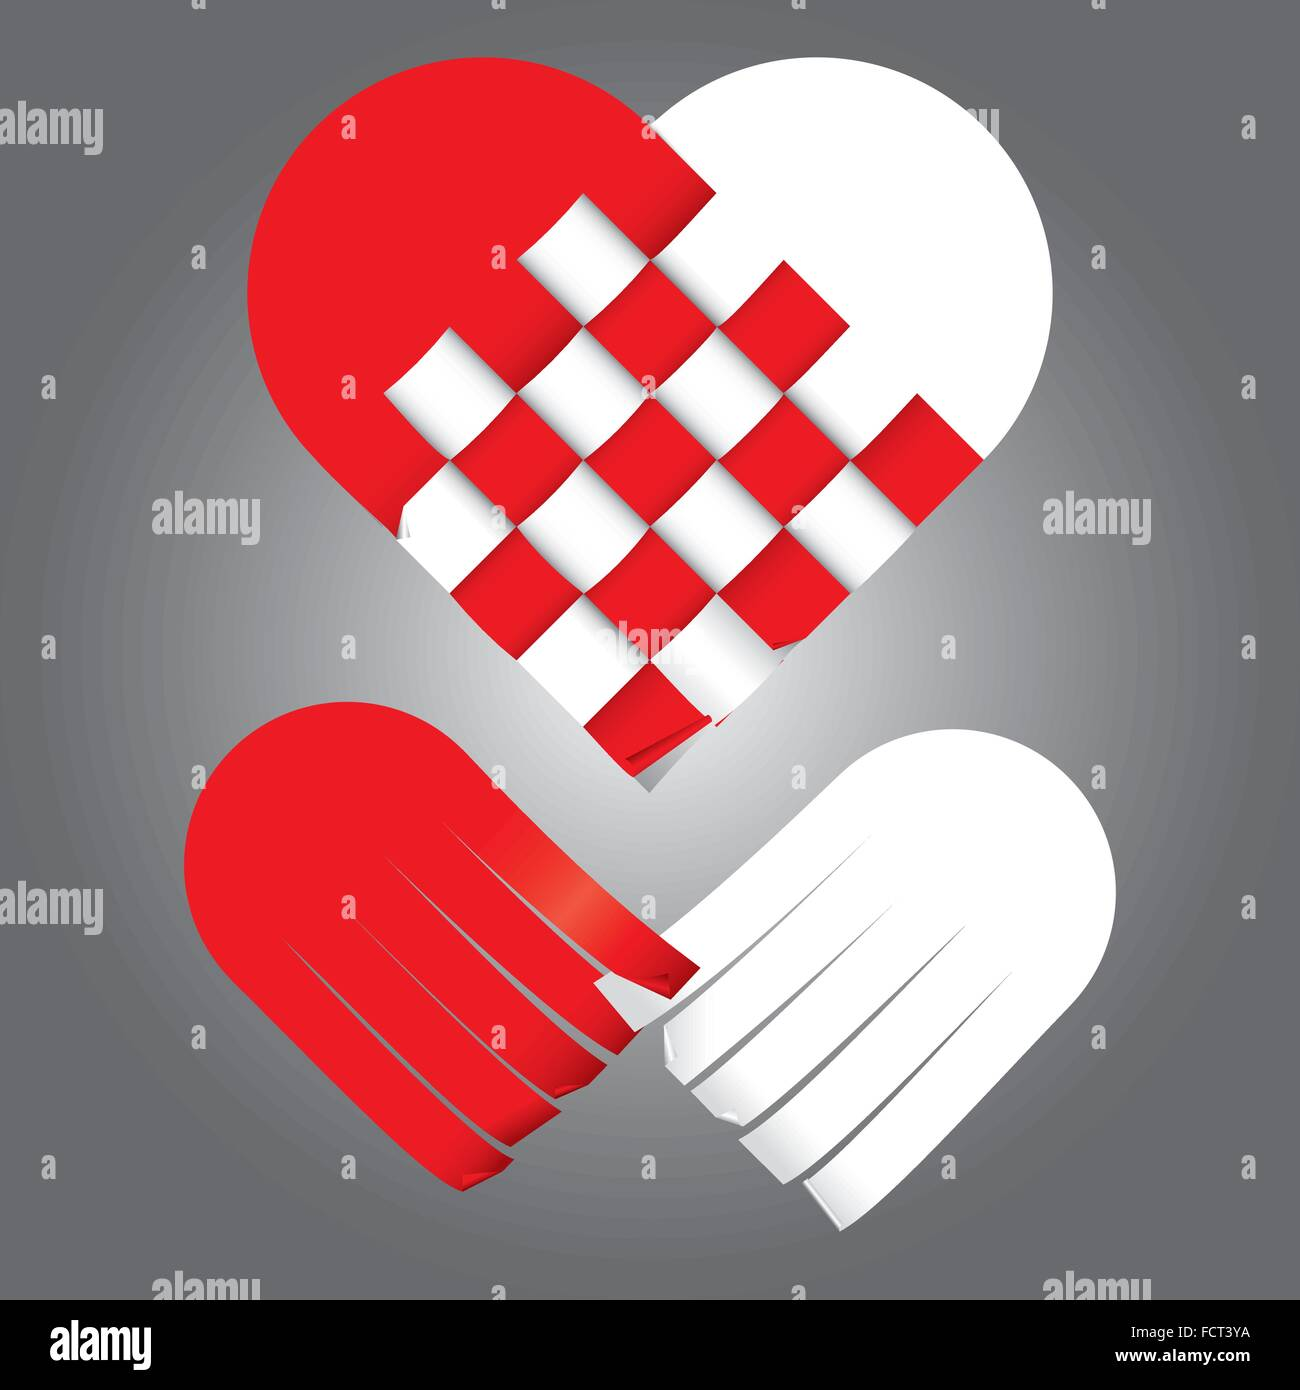 illustration of weaving heart two tones, red and white - Stock Vector